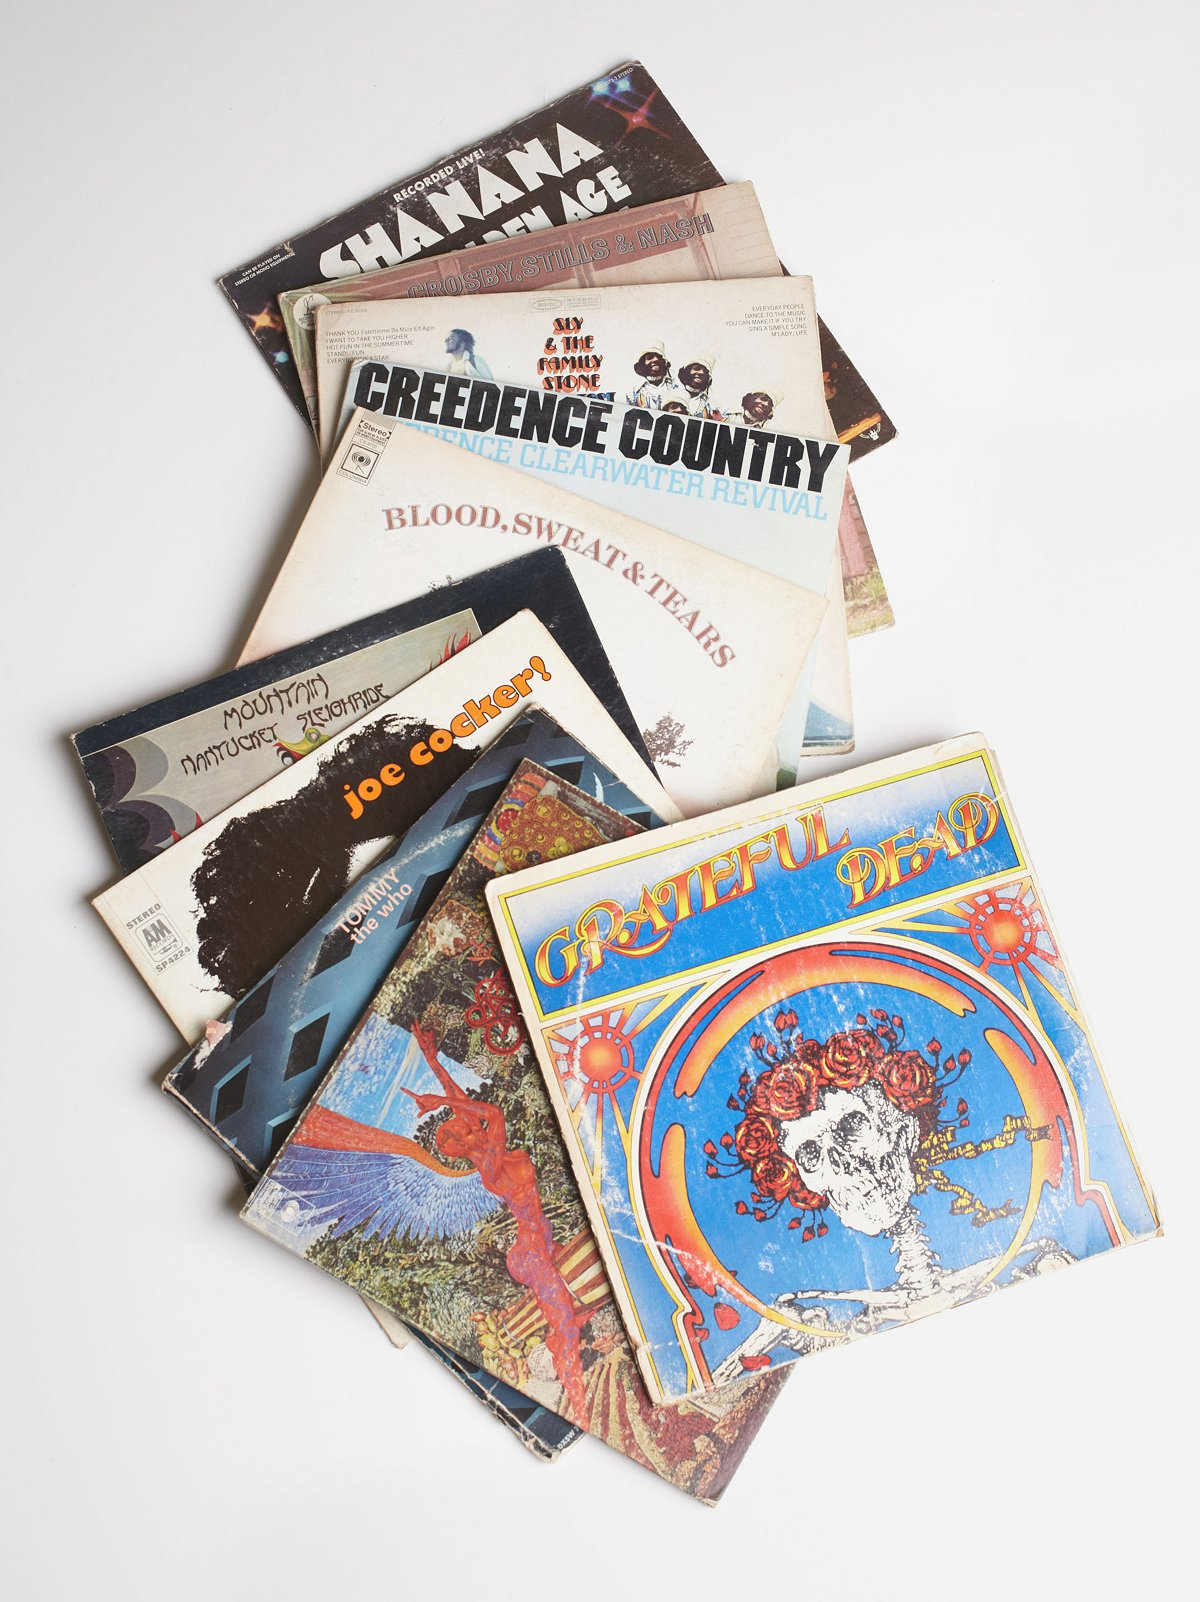 Vintage Woodstock Record Collection